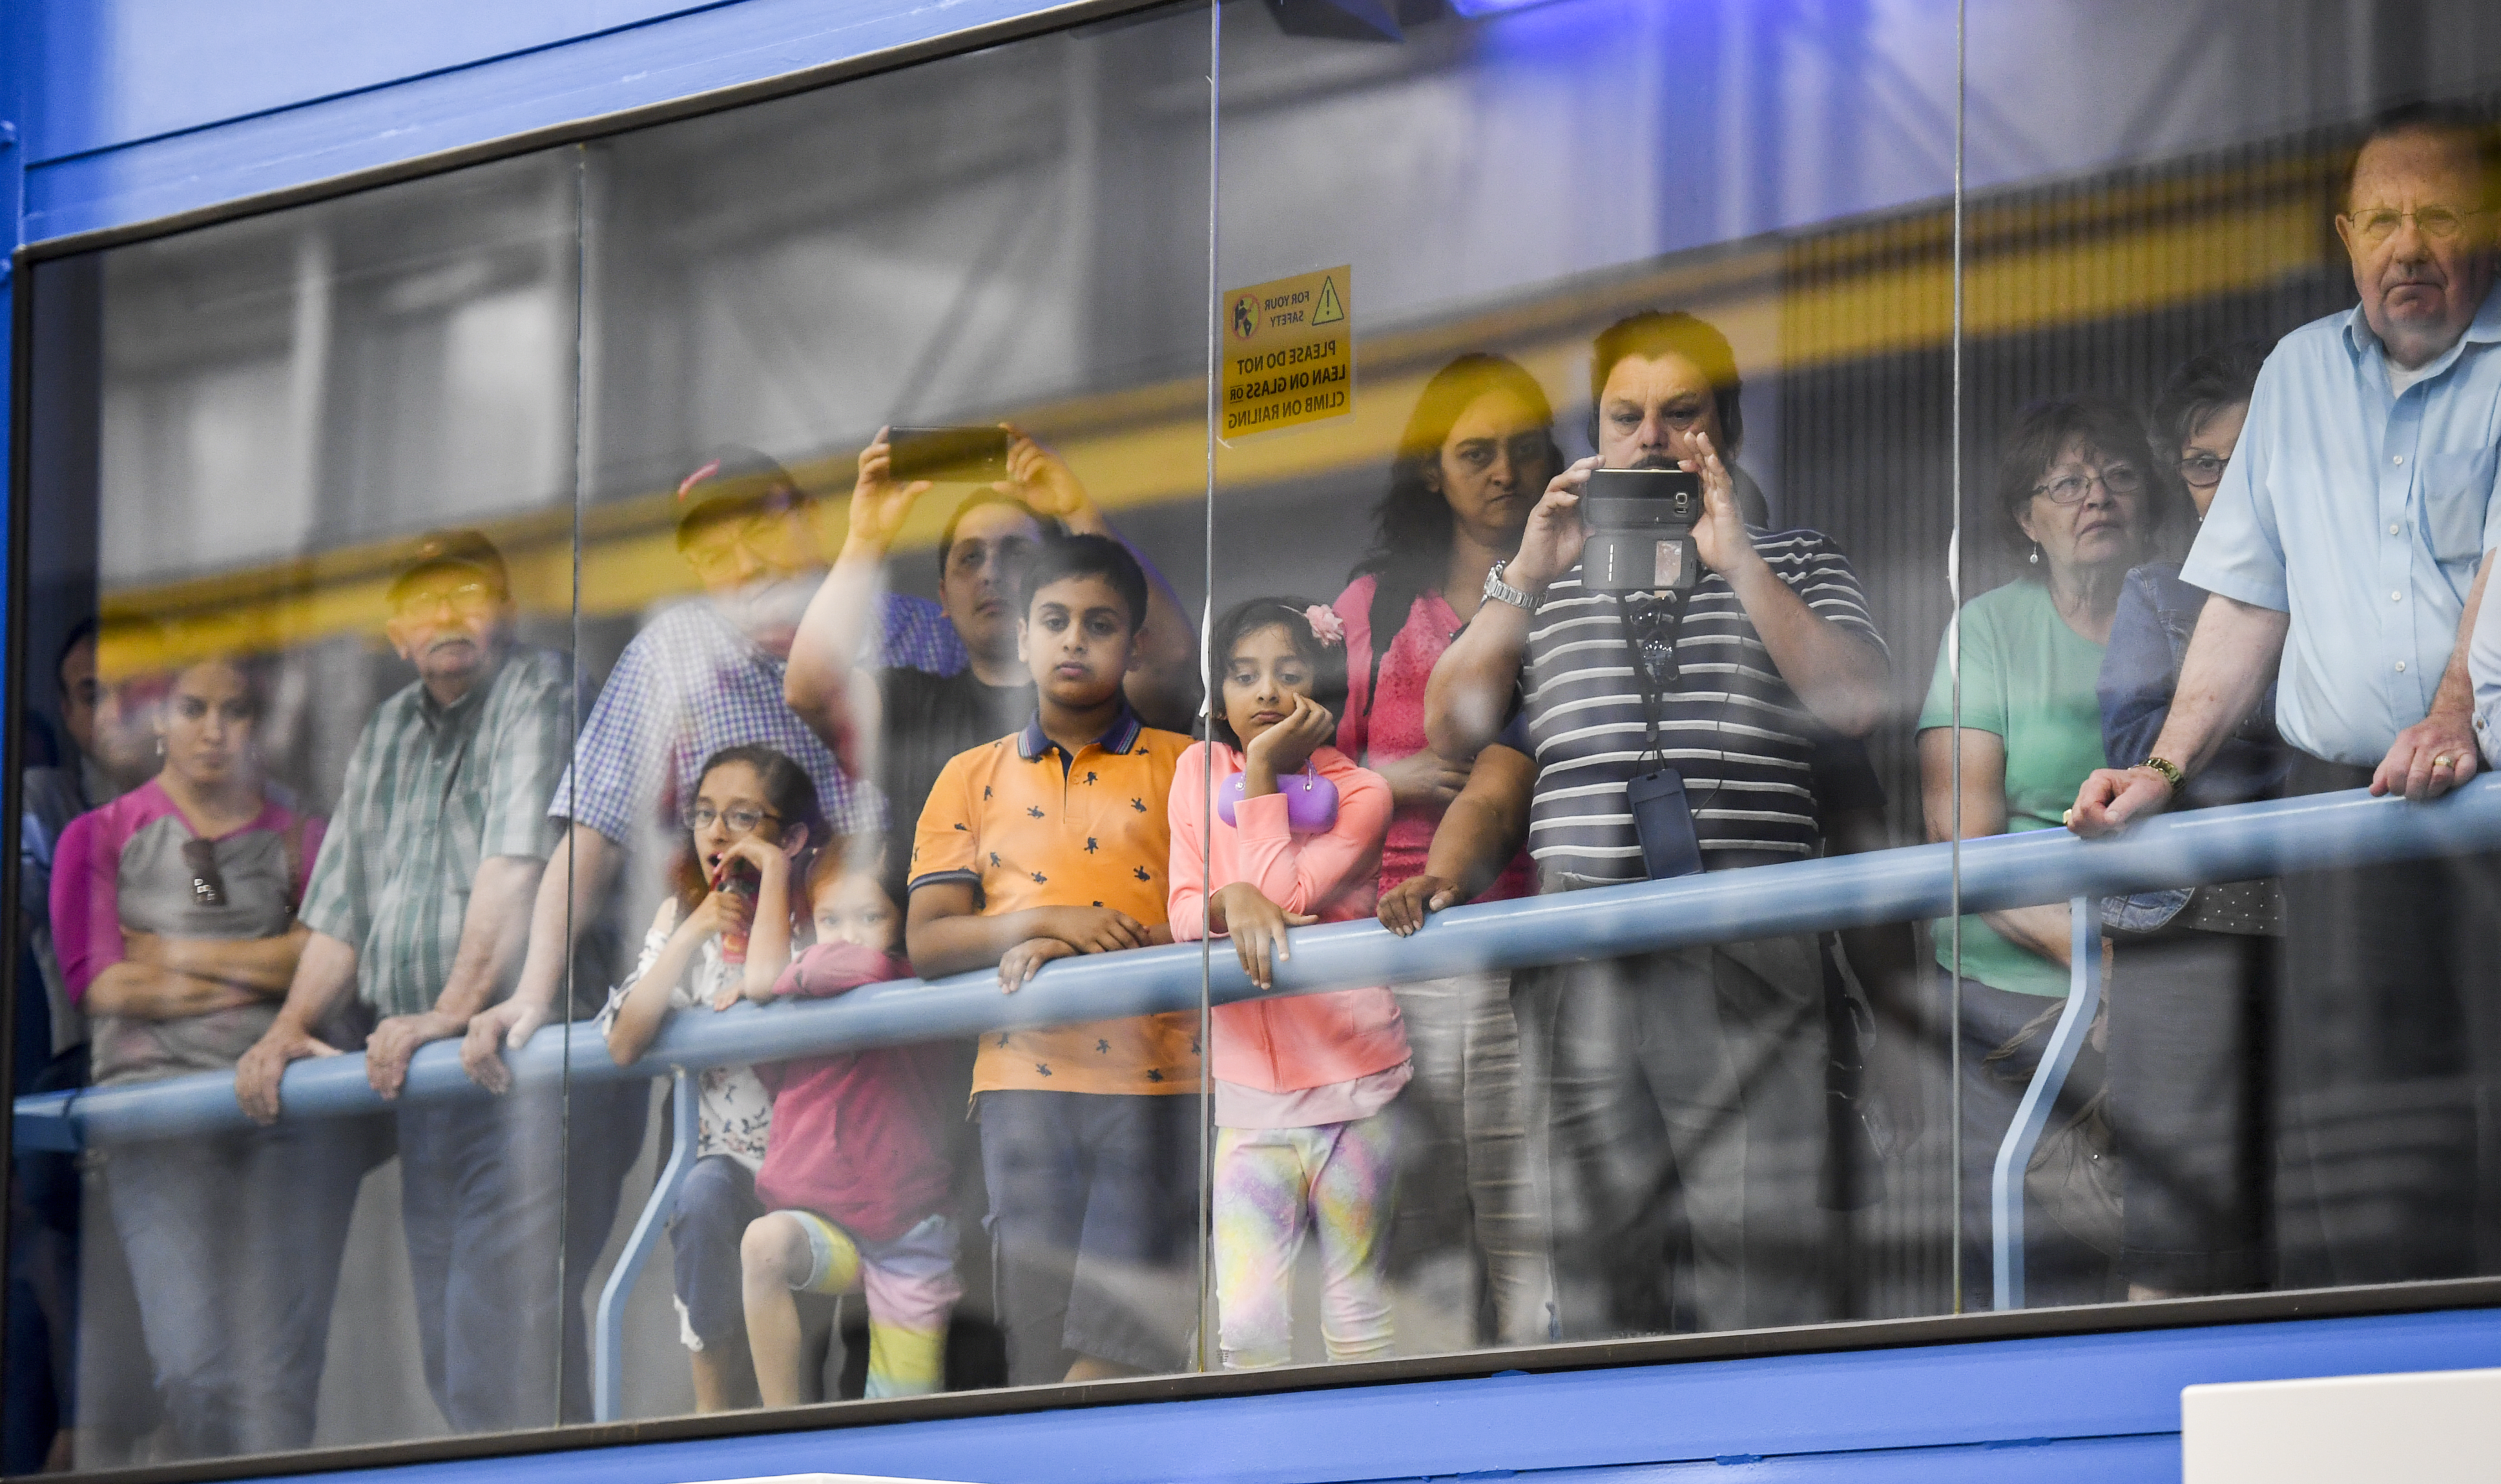 Visitors watch an astronaut practice for flight April 26 at NASA's Johnson Space Center in Houston. Despite the end of shuttle flights, astronauts still travel to the International Space Station. MUST CREDIT: Washington Post photo by Jonathan Newton